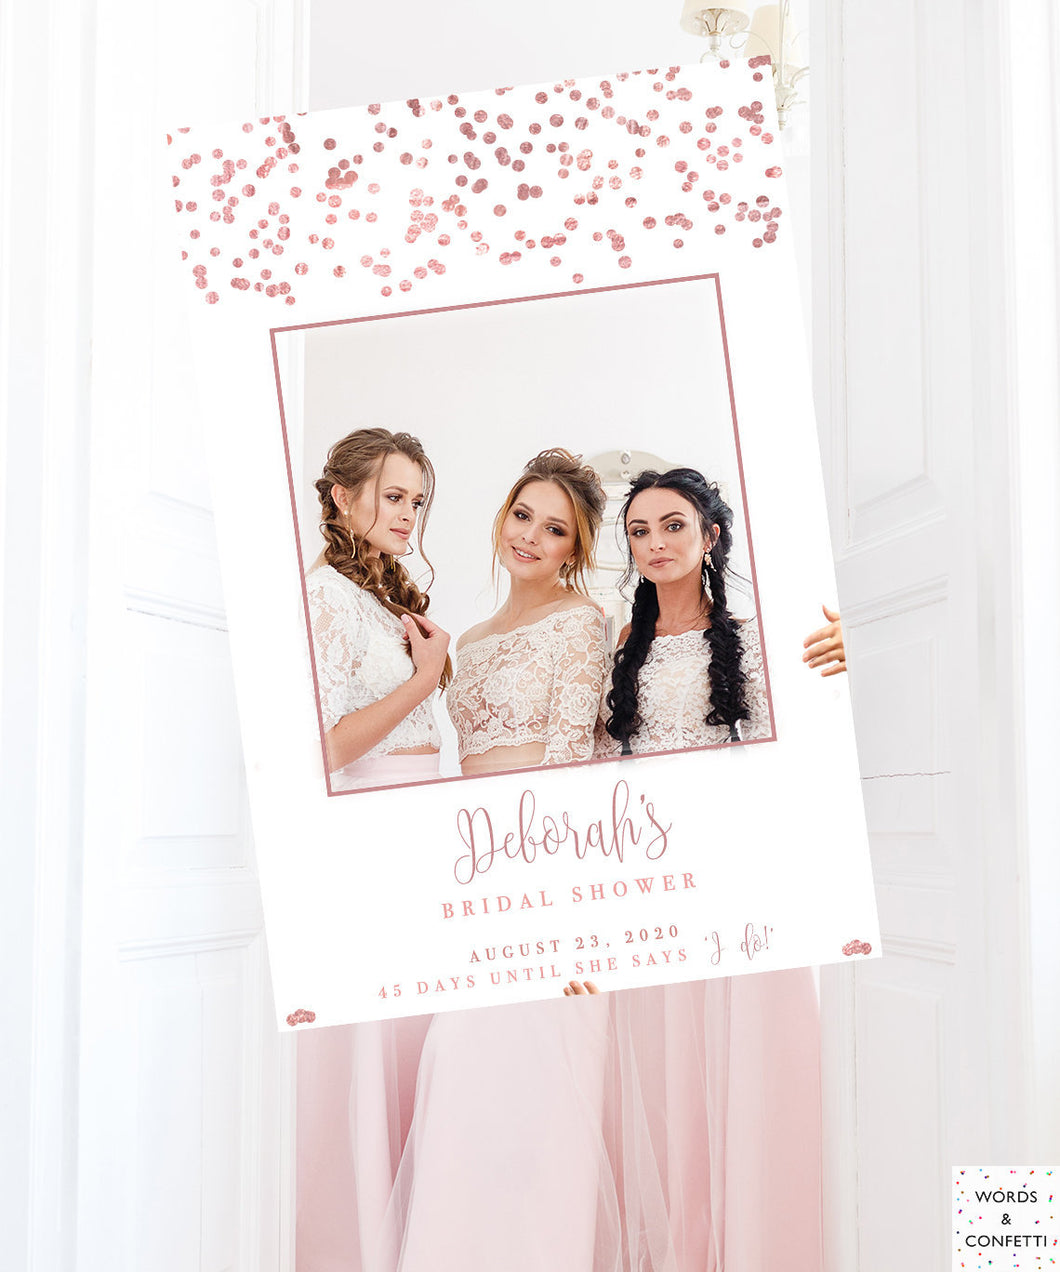 Bridal Shower Decorations Rose Gold, Bridal Shower Photo Prop Frame, Bridal Shower Photo Booth Frame Printed, Bridal Shower Sign, Wedding